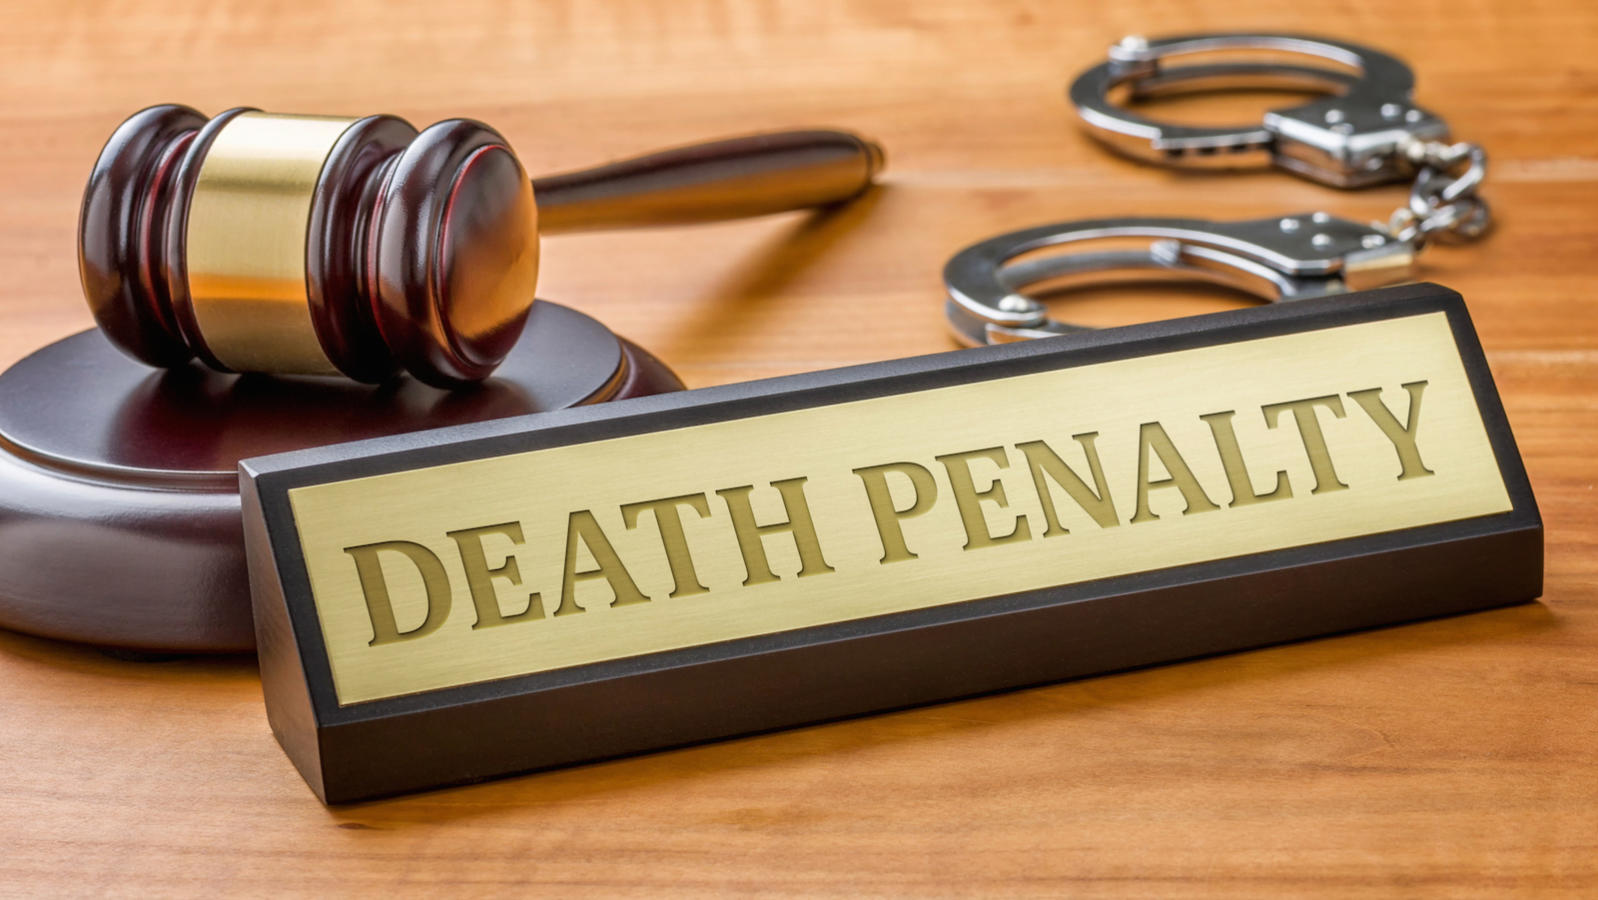 Modern types of death penalty